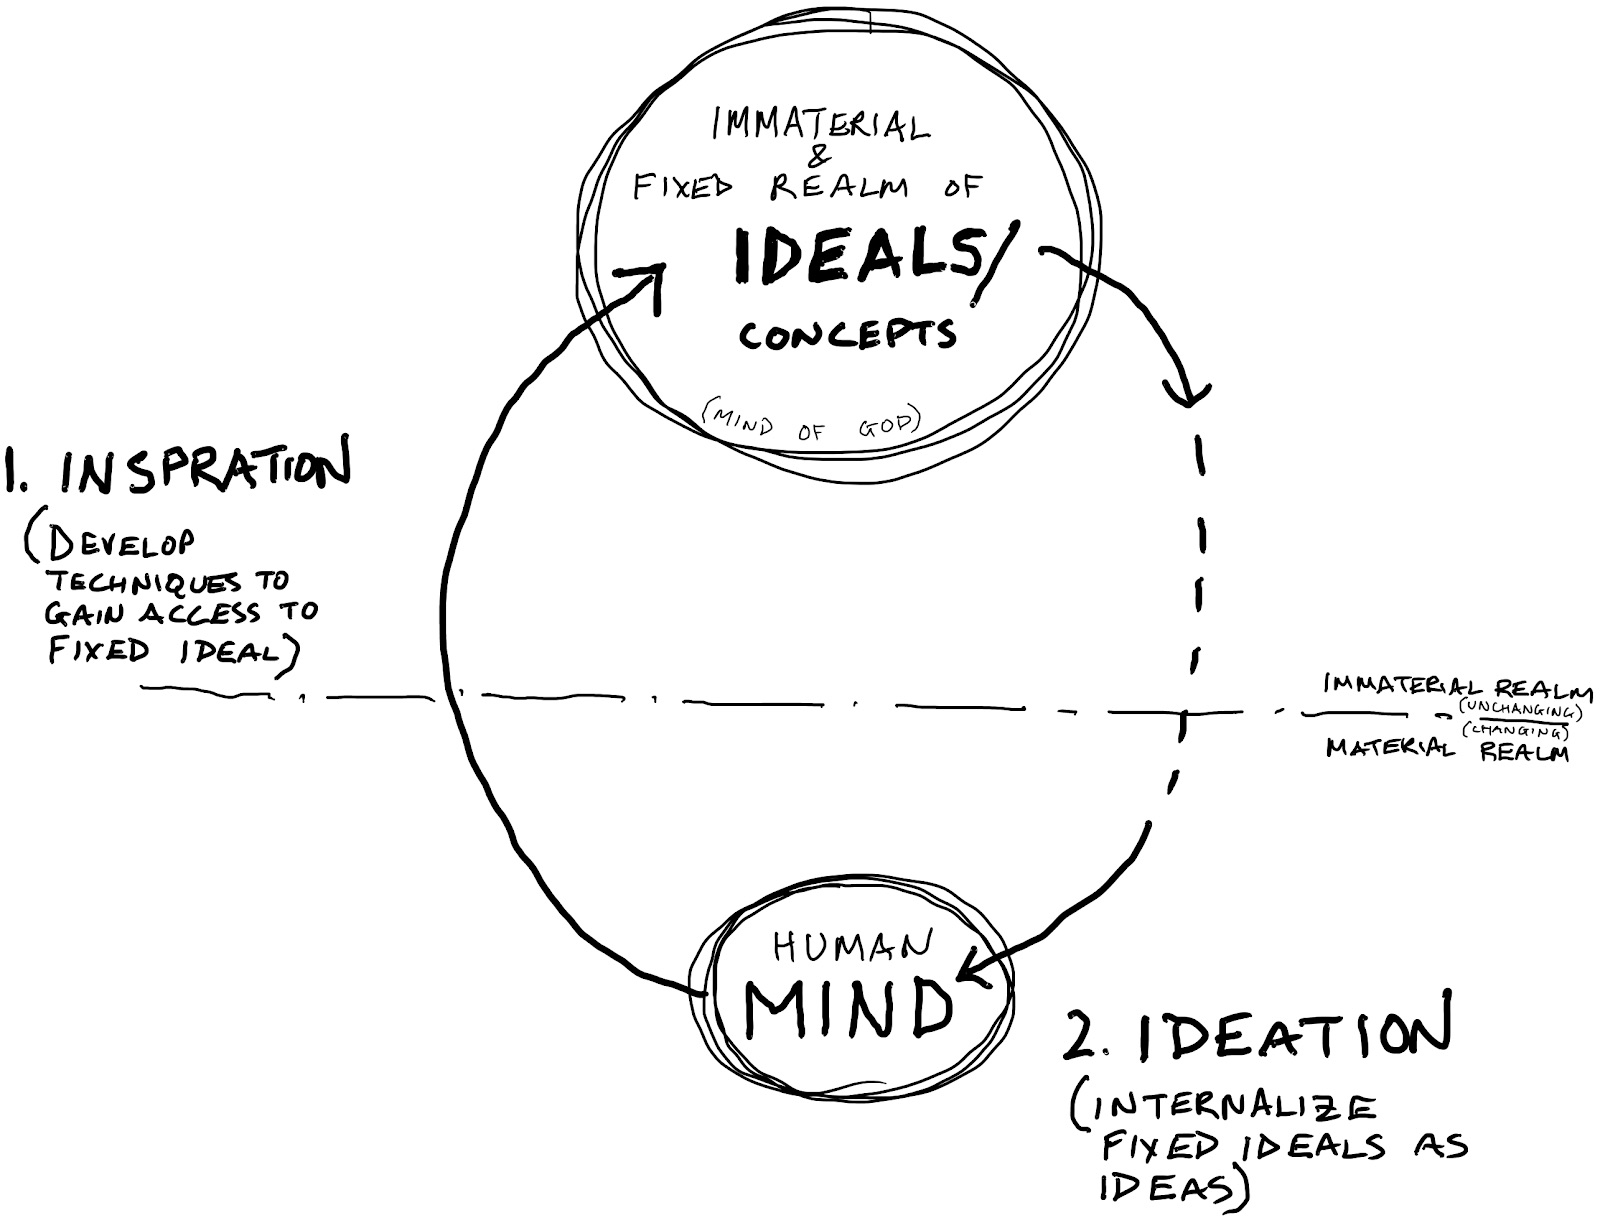 Ideation and the Mind of God